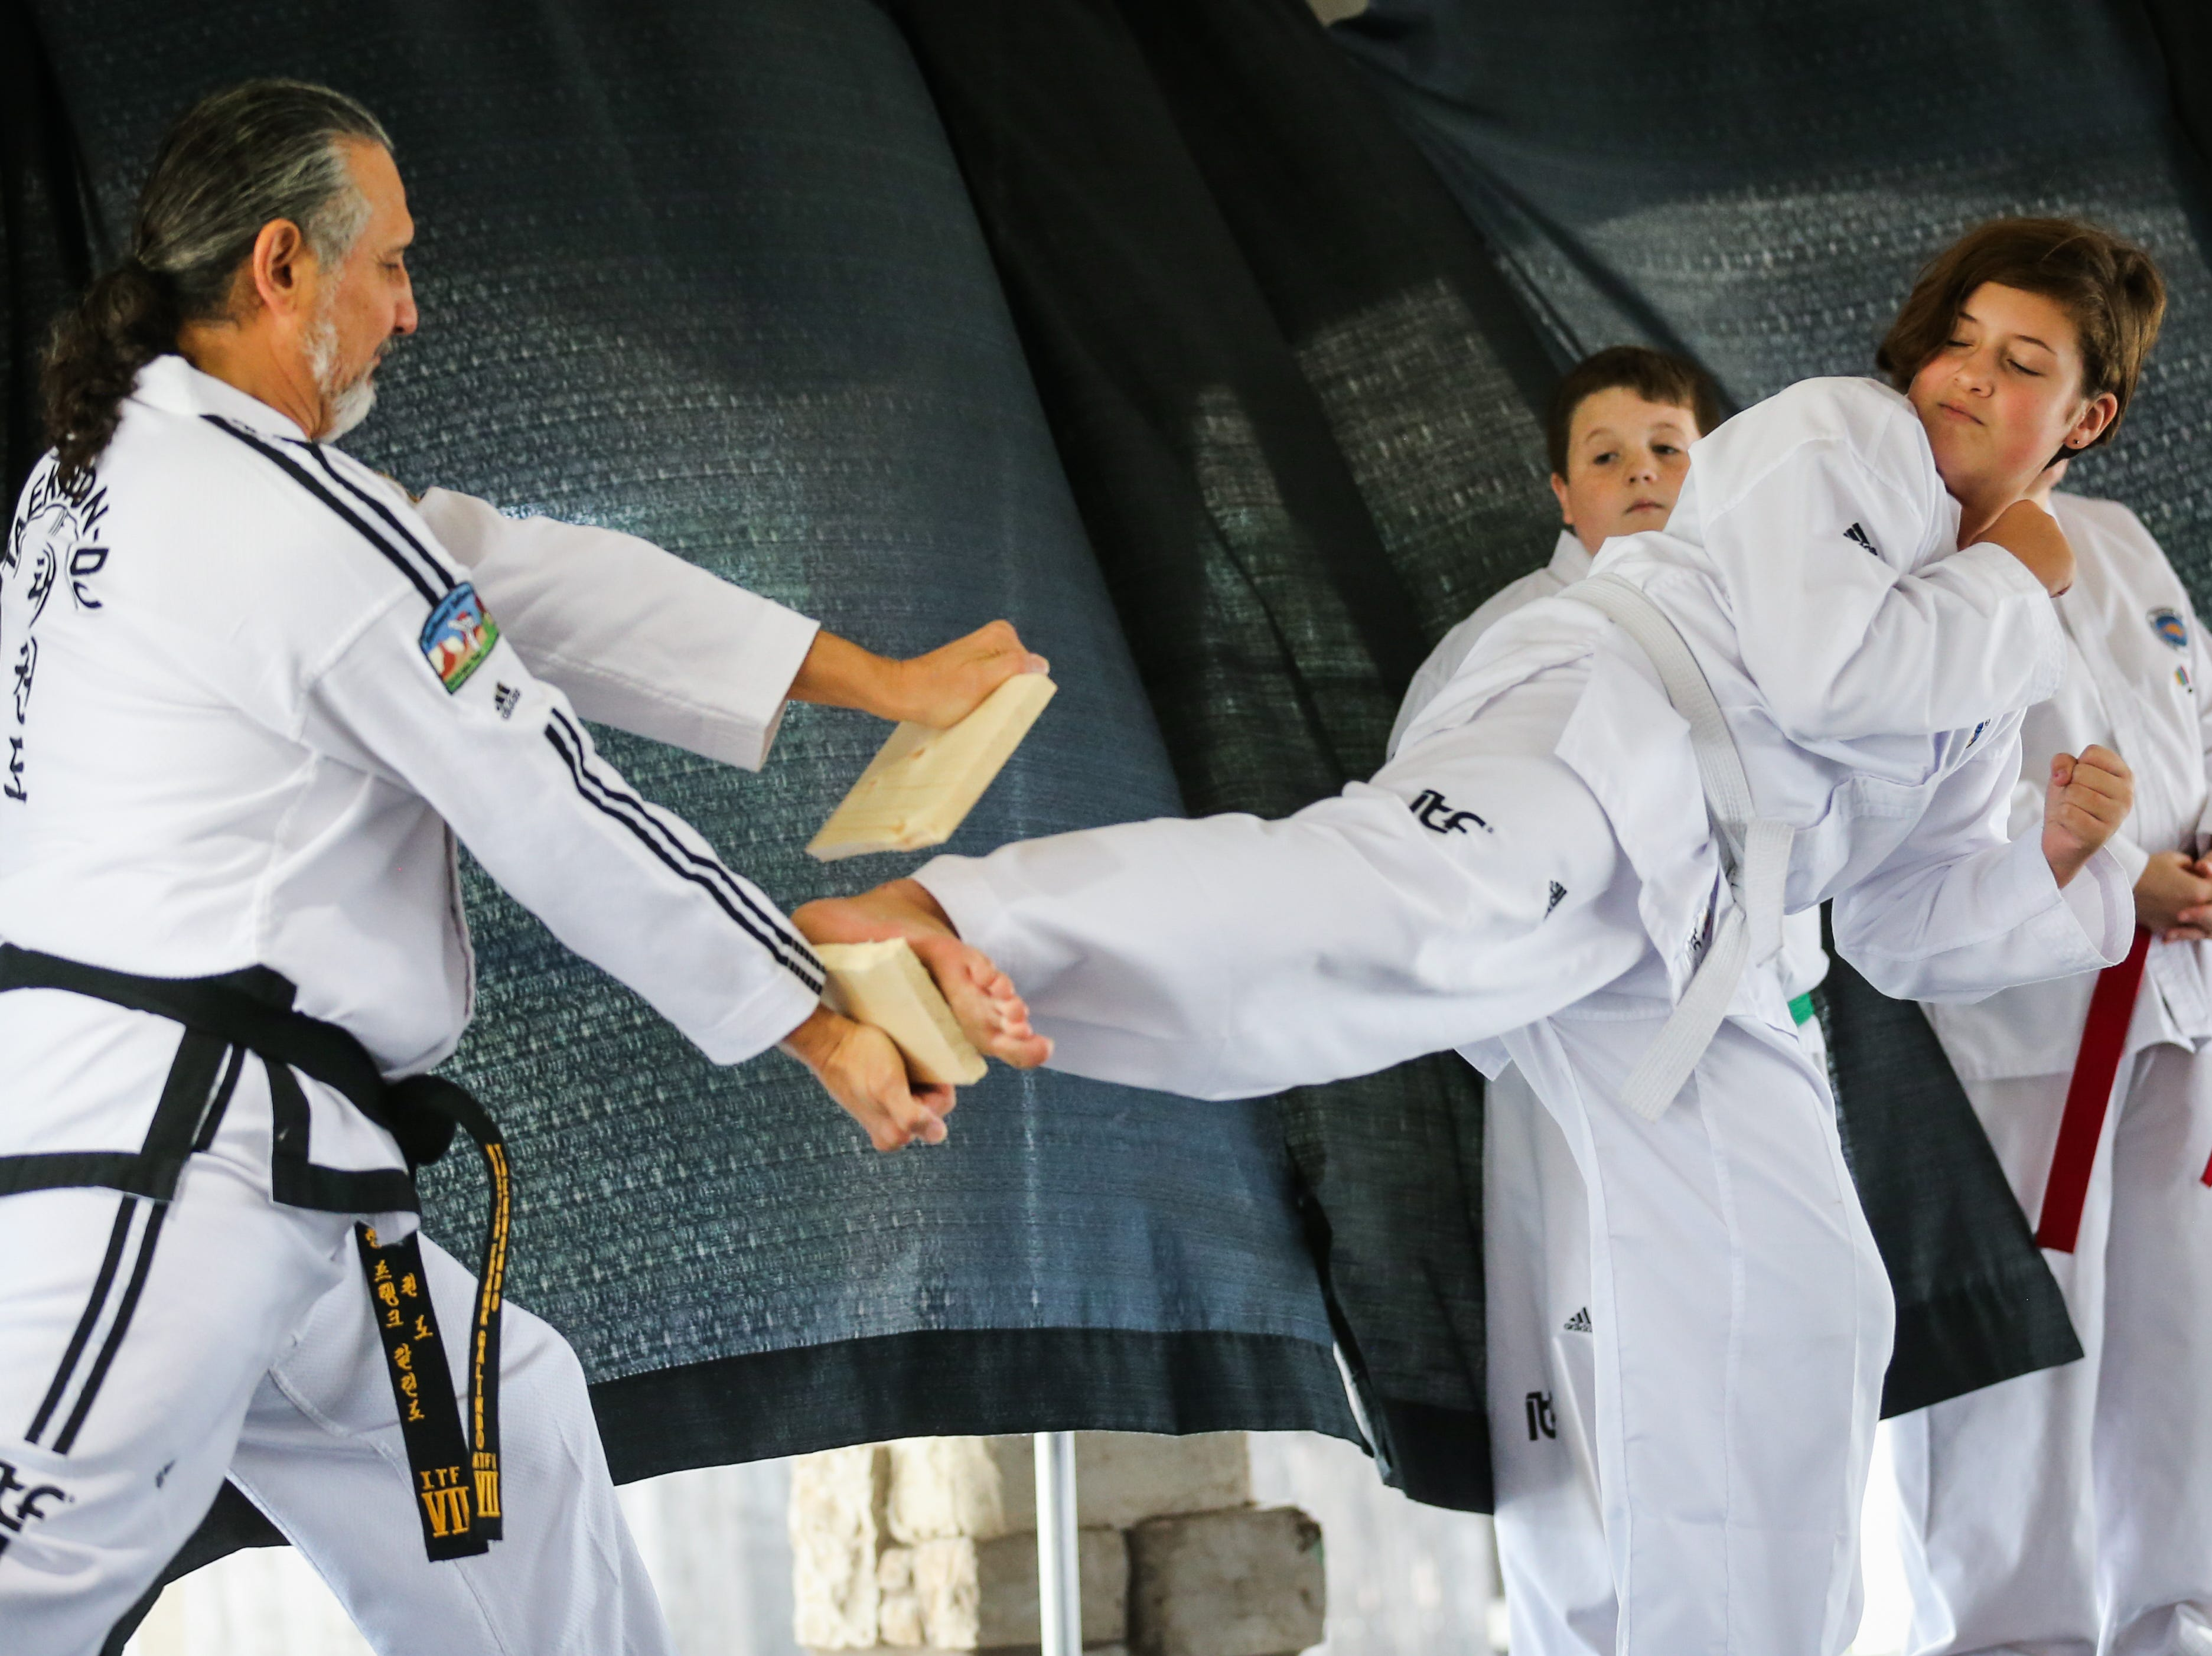 Frank Gailndo with Southwest TaeKwon-Do holds a board for Lanaya Underhill, 12, to break during a demonstration at the Asian Bazaar Saturday, Oct. 20, 2018, at El Paseo de Santa Angela.